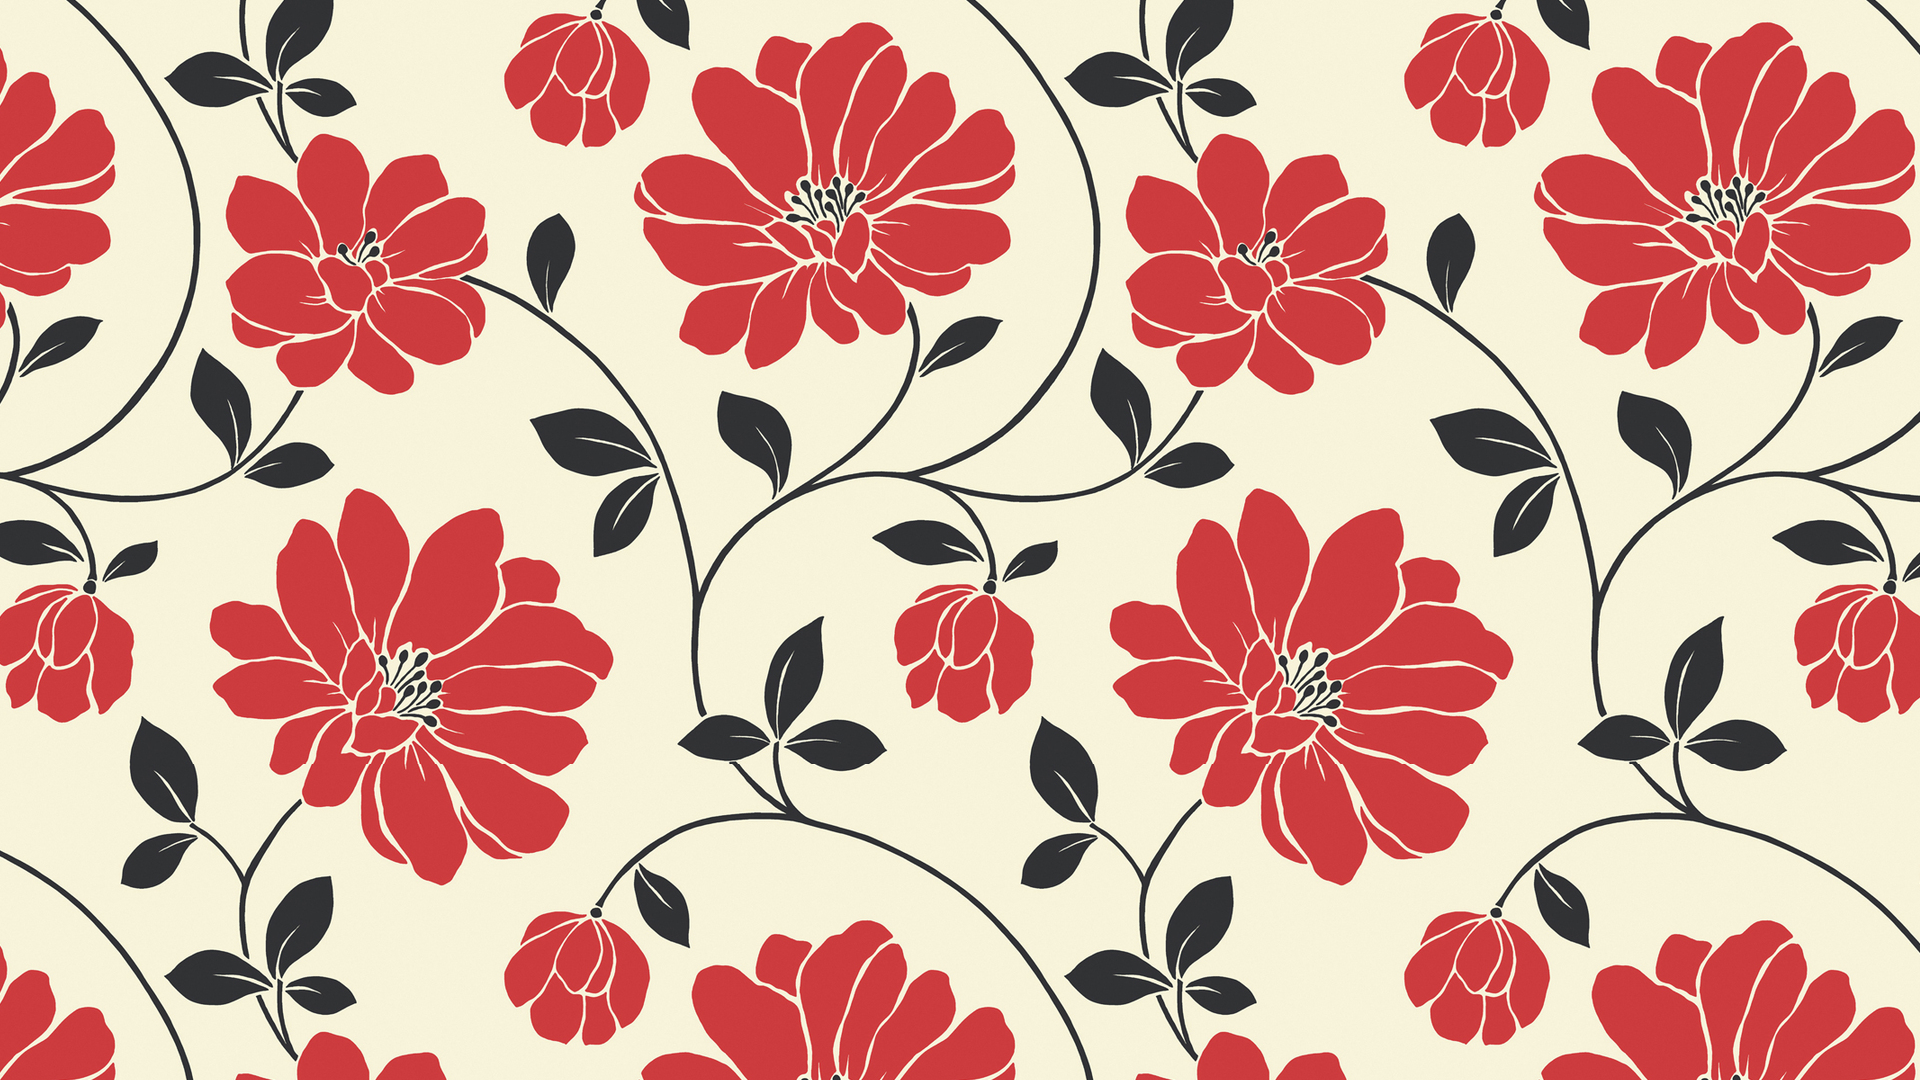 desktop wallpaper tumblr,pattern,red,floral design,leaf,botany